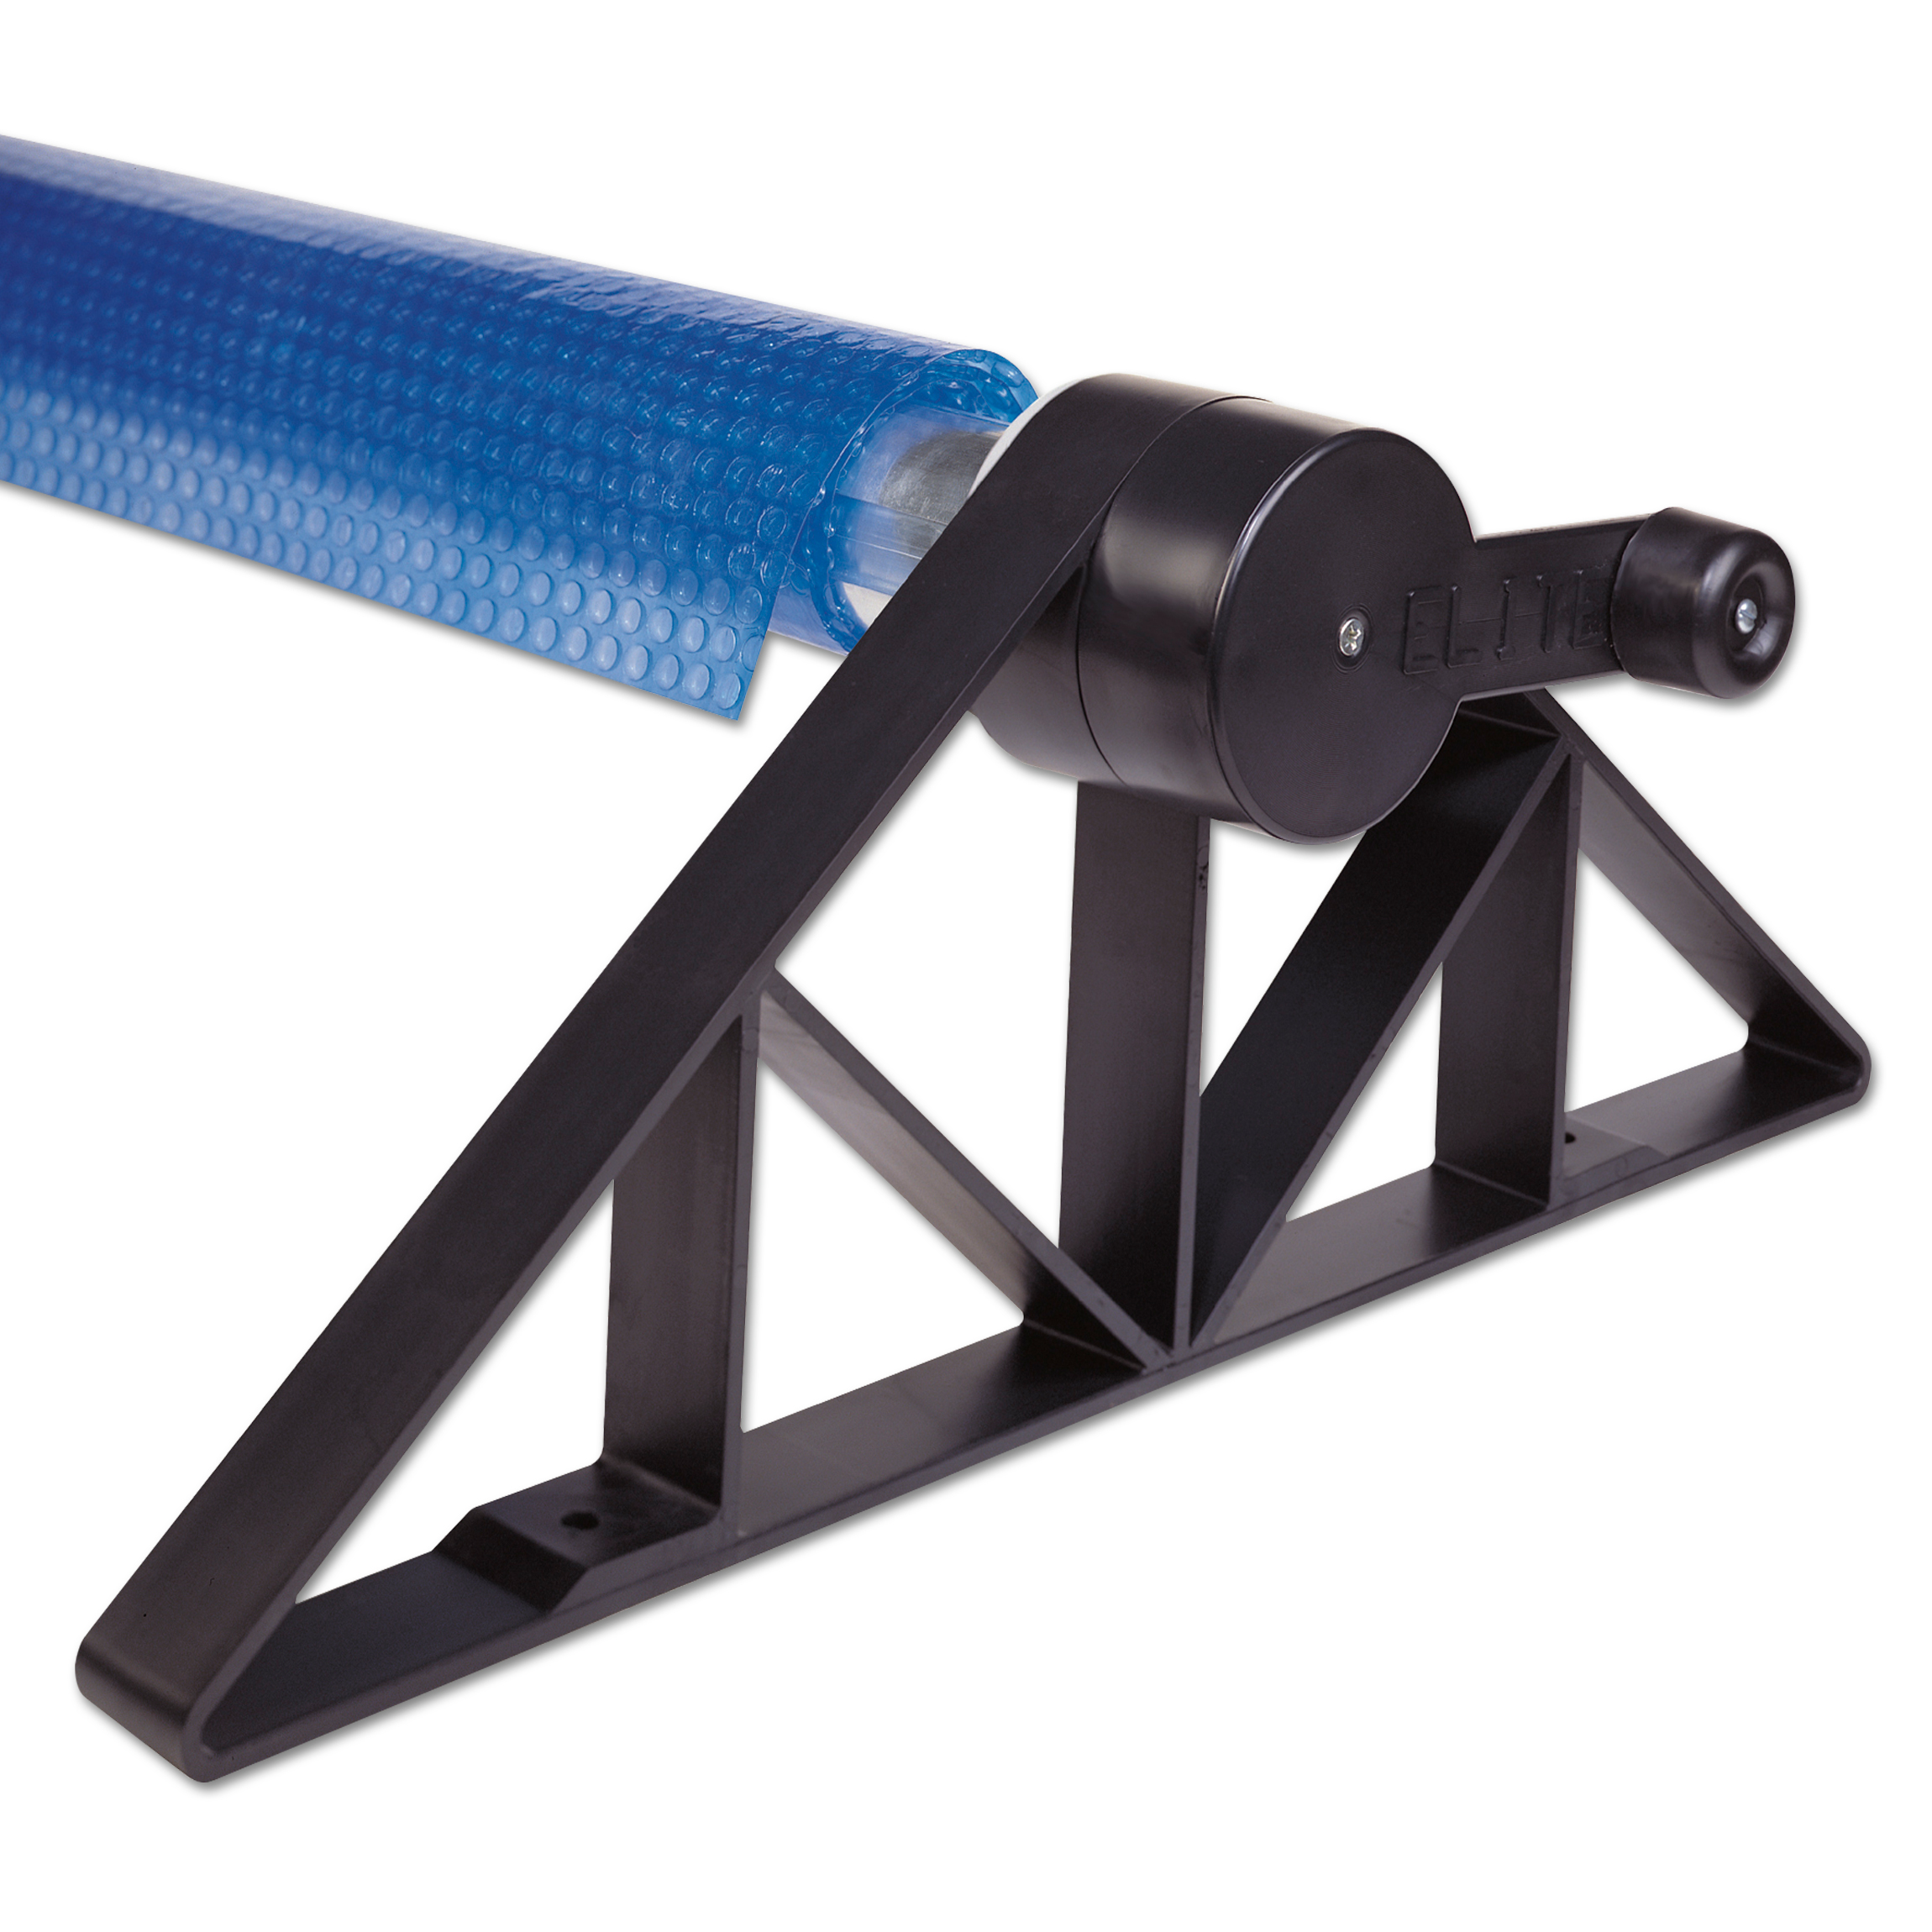 Horizon HV-1 In Ground Solar Cover Reel - Up To 20 Feet Wide